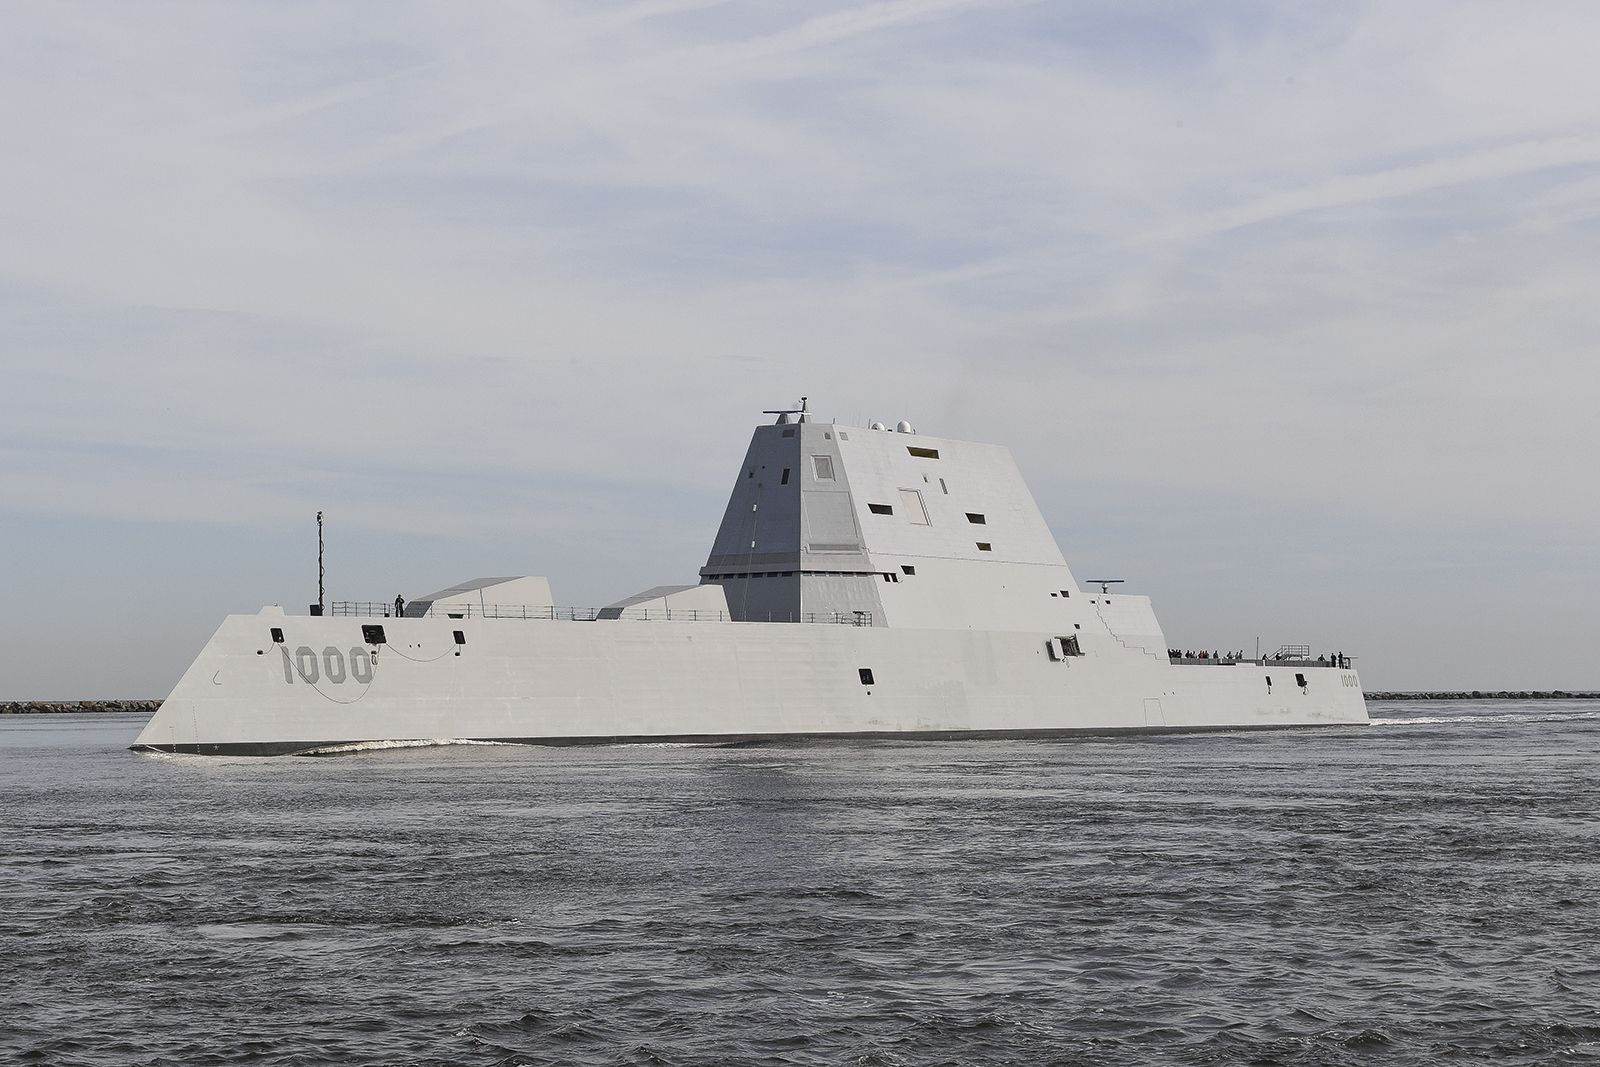 How the Zumwalt's Strange Design Actually Helps It Handle Rough Waters